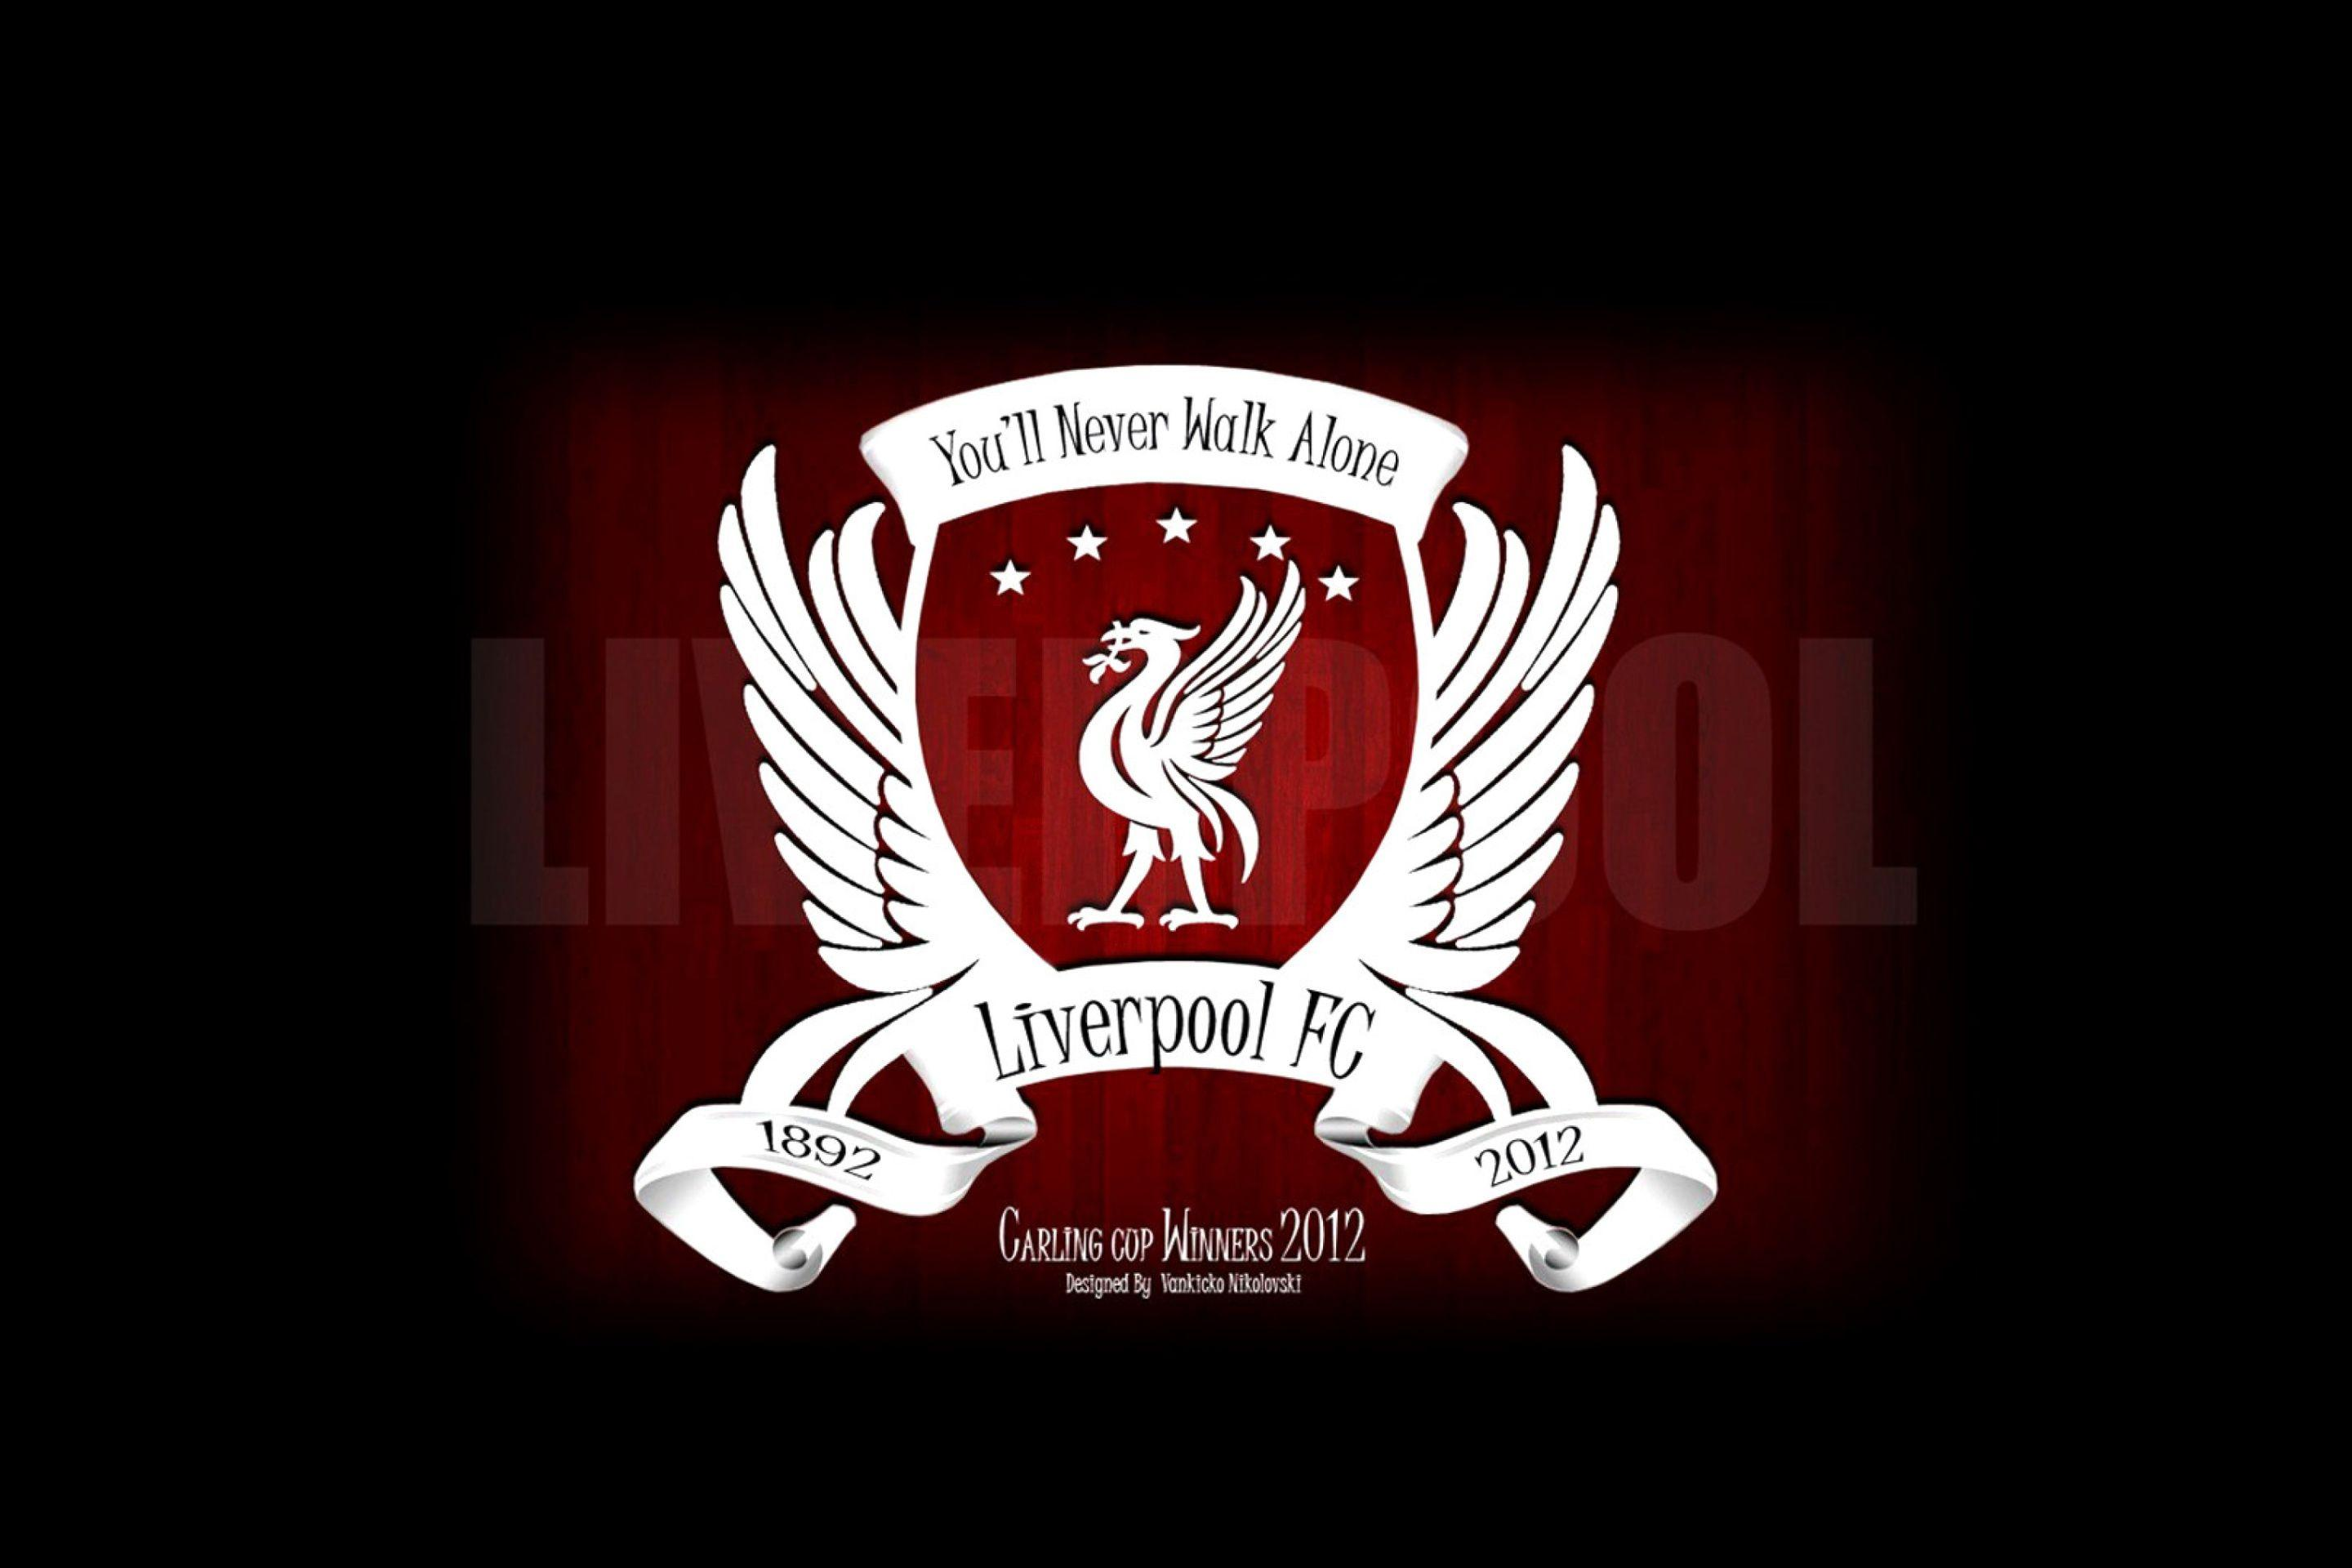 Liverpool FC Wallpaper for Samsung Galaxy S6